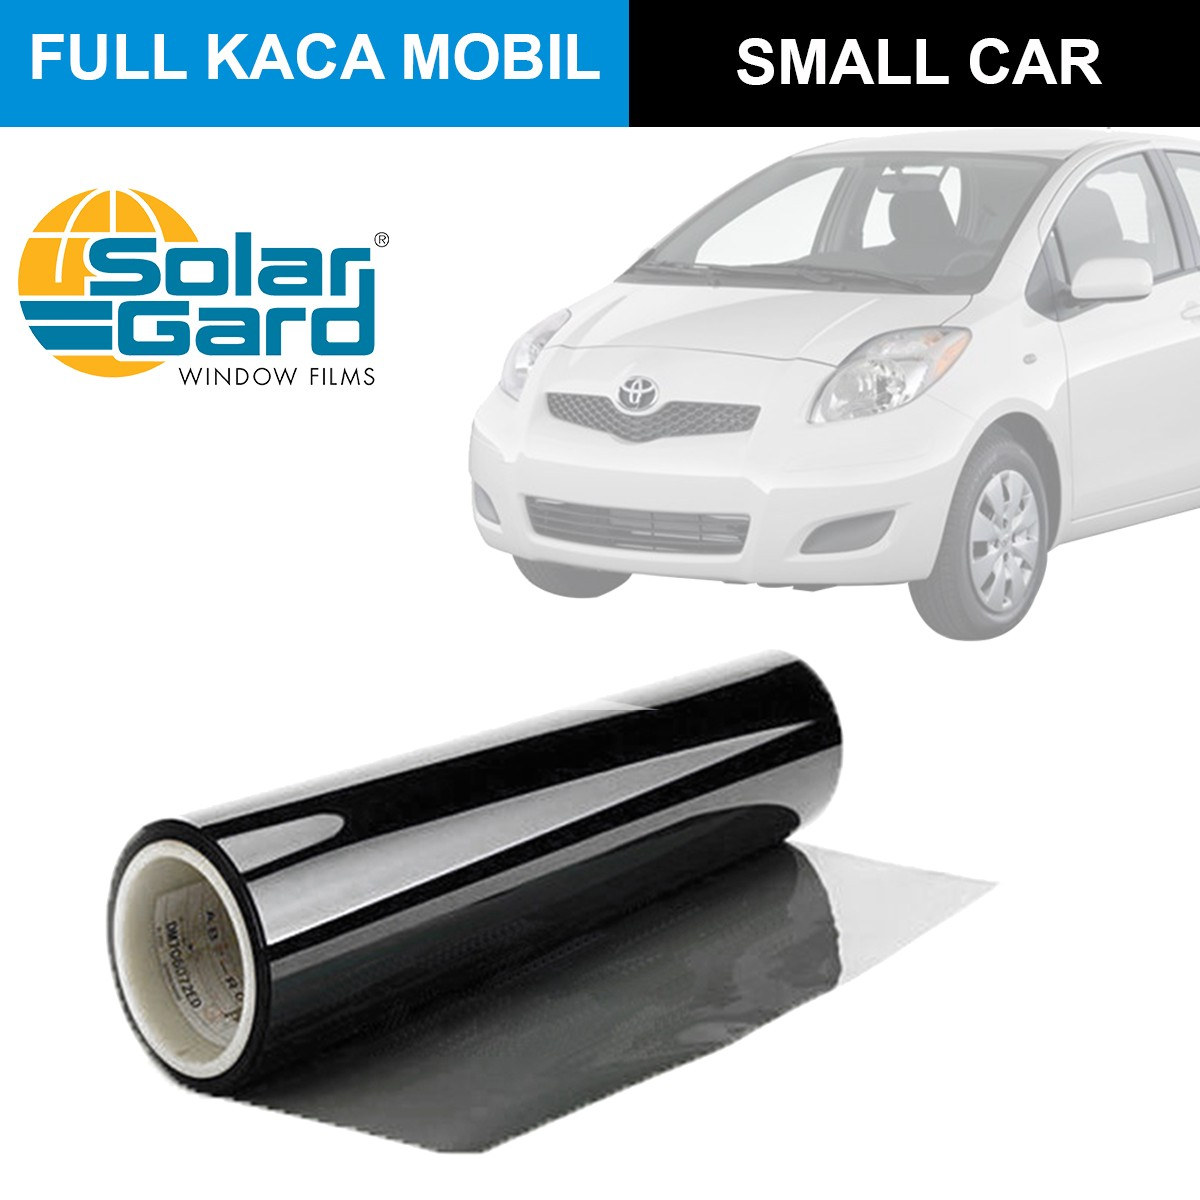 KACA FILM SOLAR GARD KOMBINASI LX + BLACK PHANTOM - (SMALL CAR) FULL KACA